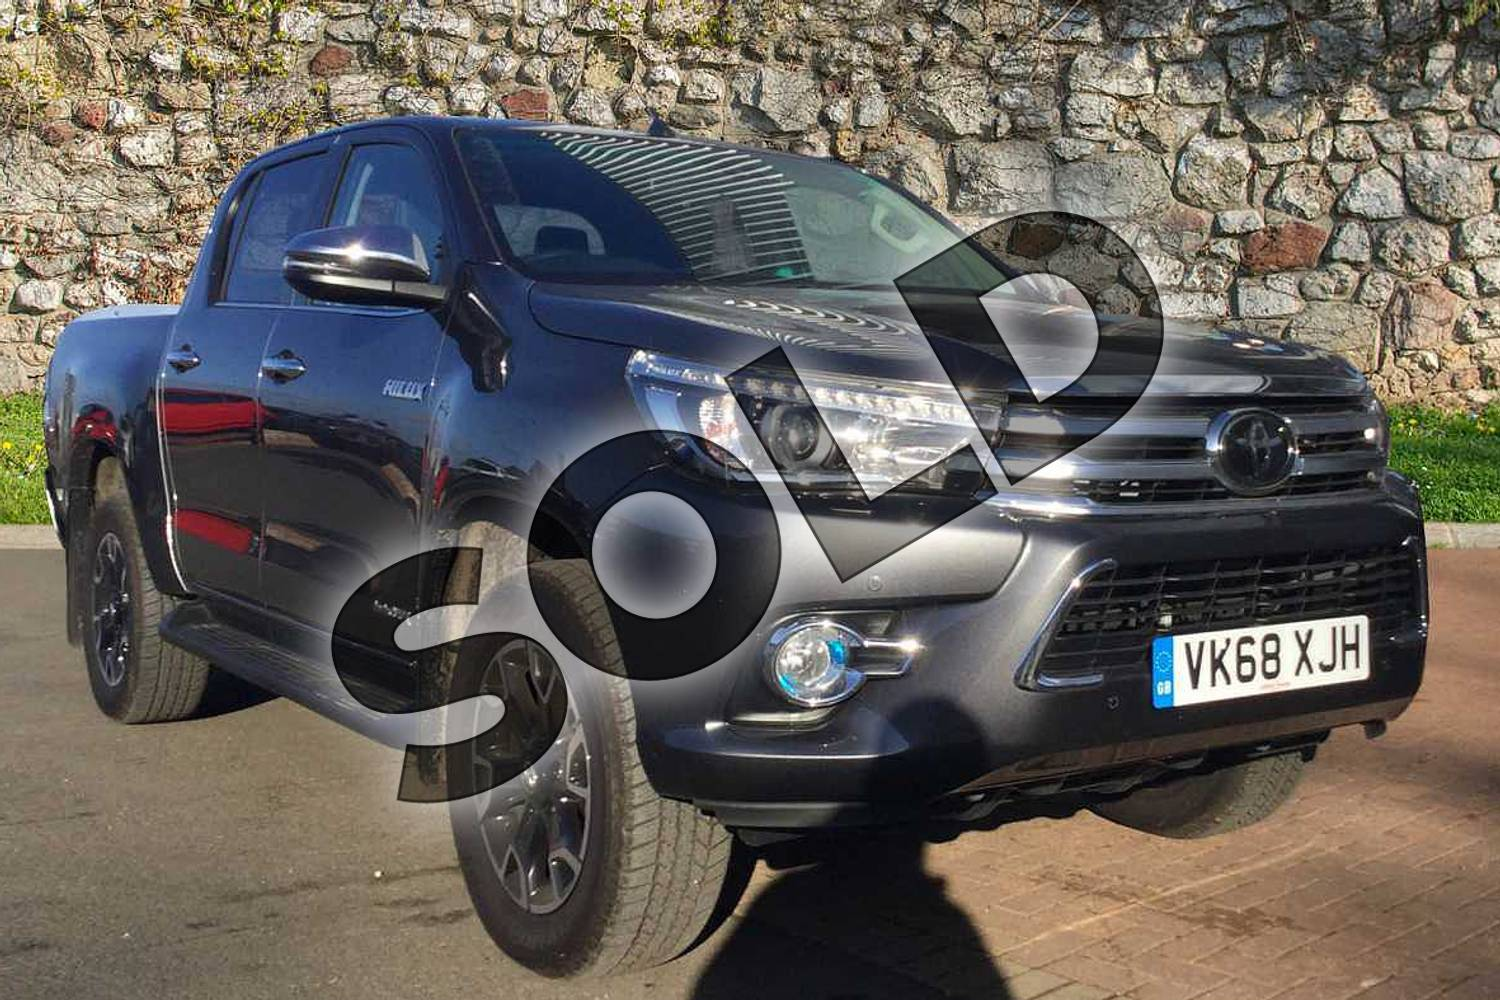 2018 Toyota Hilux Diesel Diesel Invincible X D/Cab Pick Up 2.4 D-4D in Decuma Grey at Listers Toyota Cheltenham